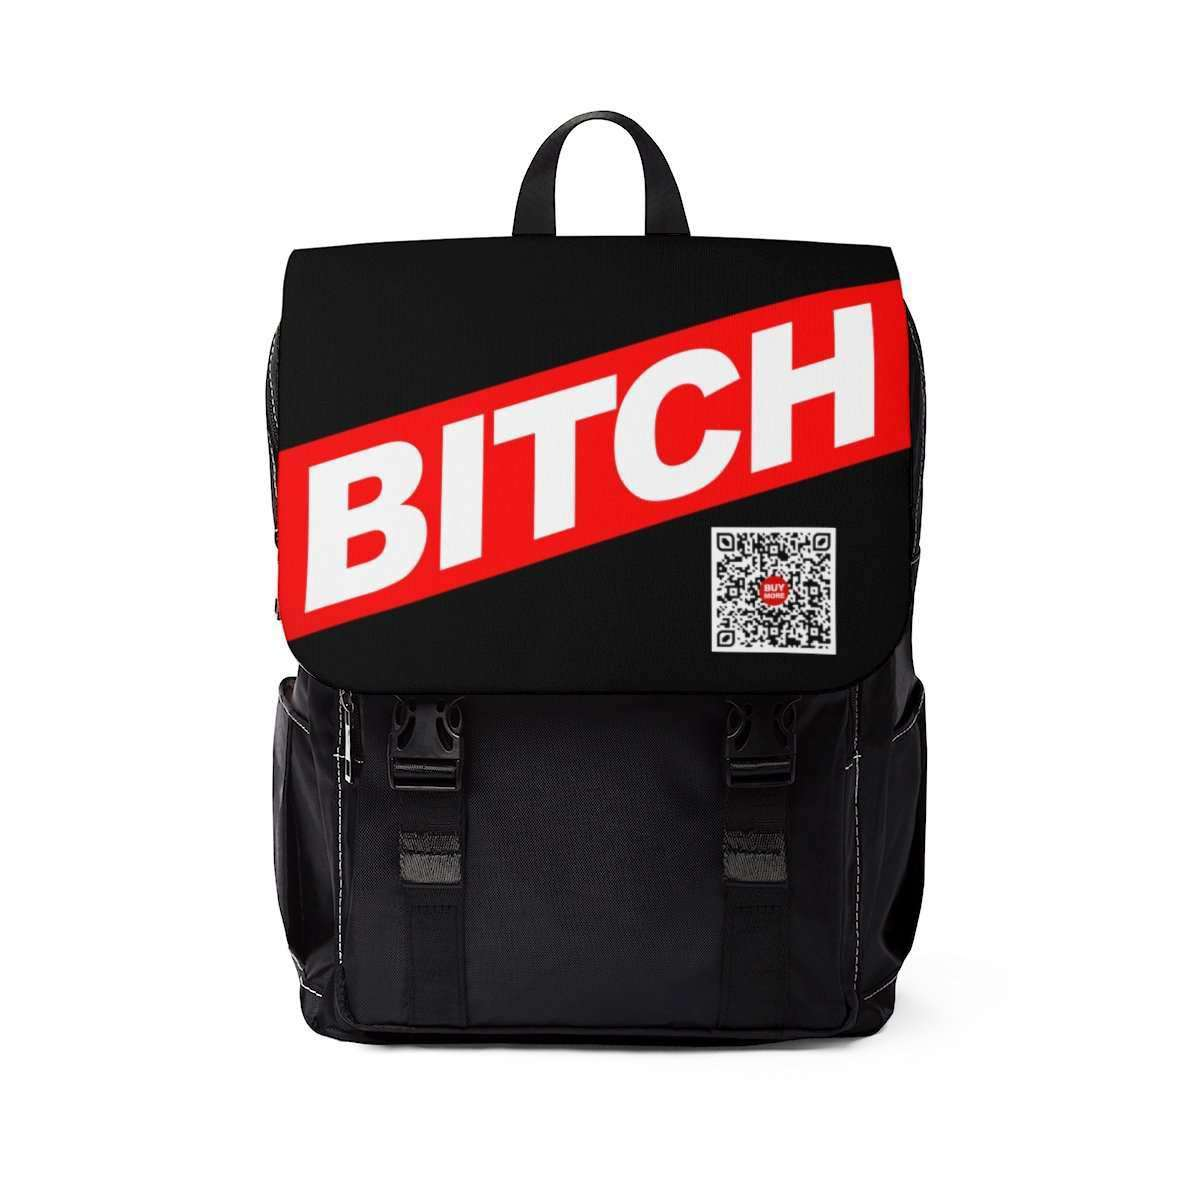 * BITCH B Unisex Casual Shoulder Backpack